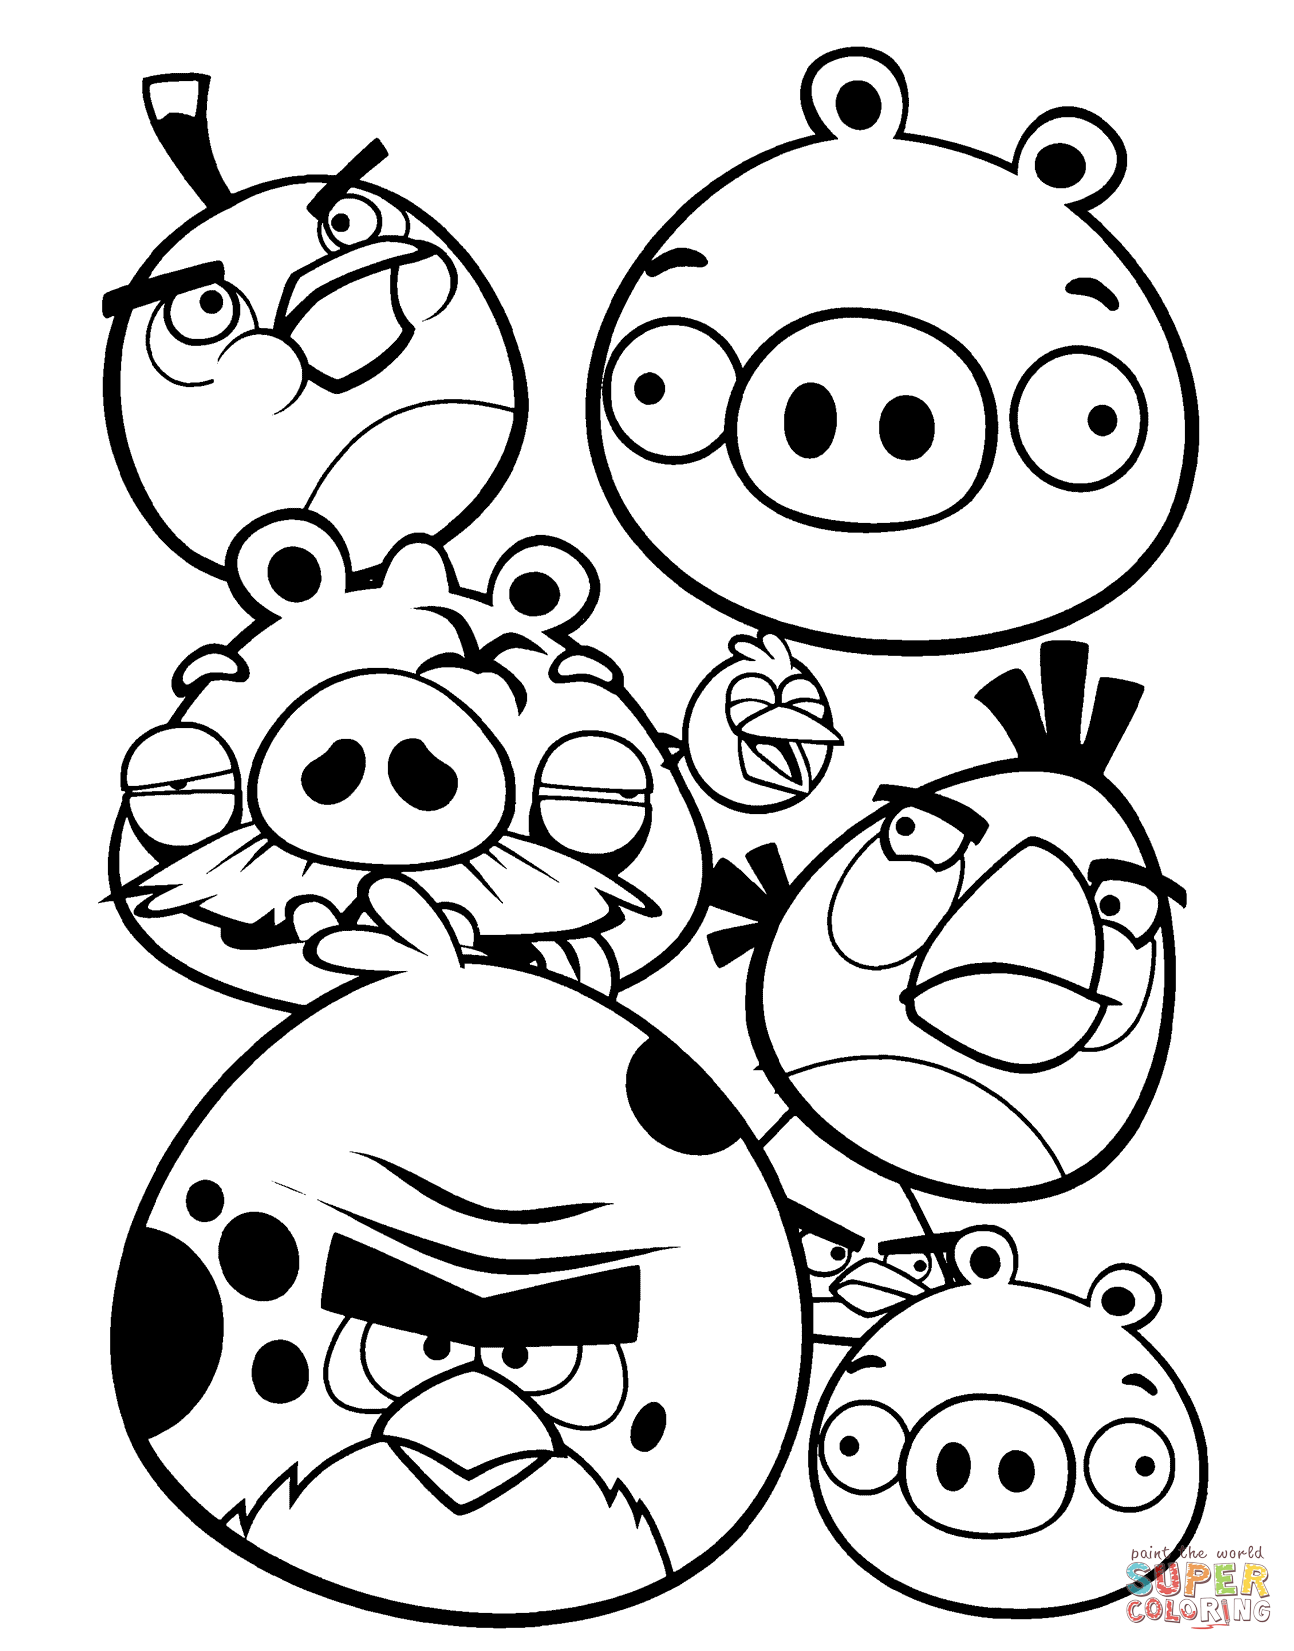 angry birds pictures to print angry birds kids coloring pages free printable kids to pictures birds print angry